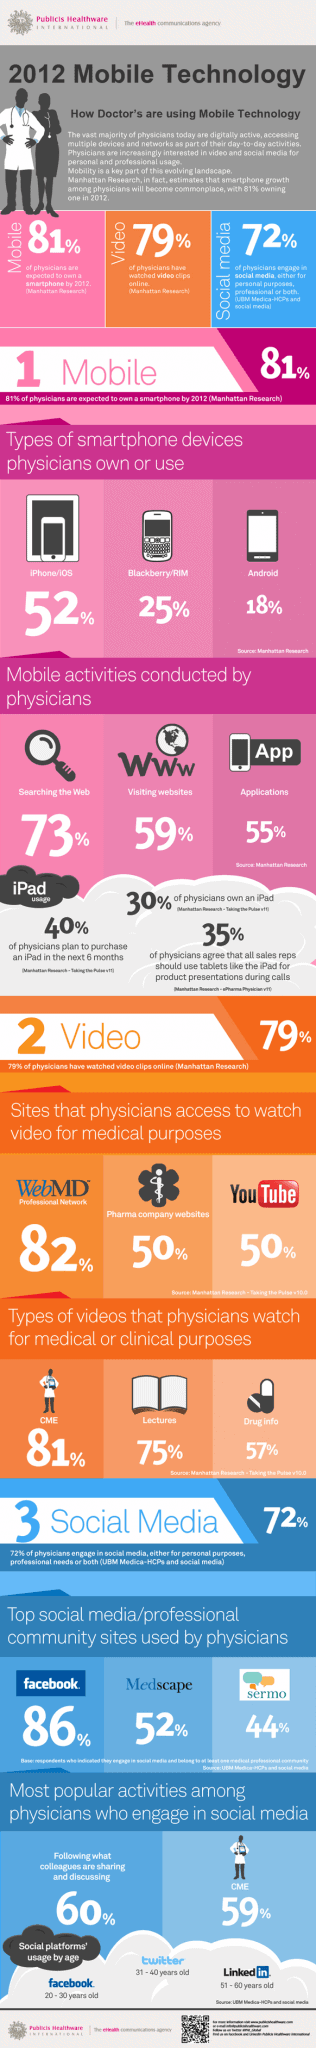 mobiletech1 - 3 New Media Statistics for Doctor's - 2012 InfoGraphic